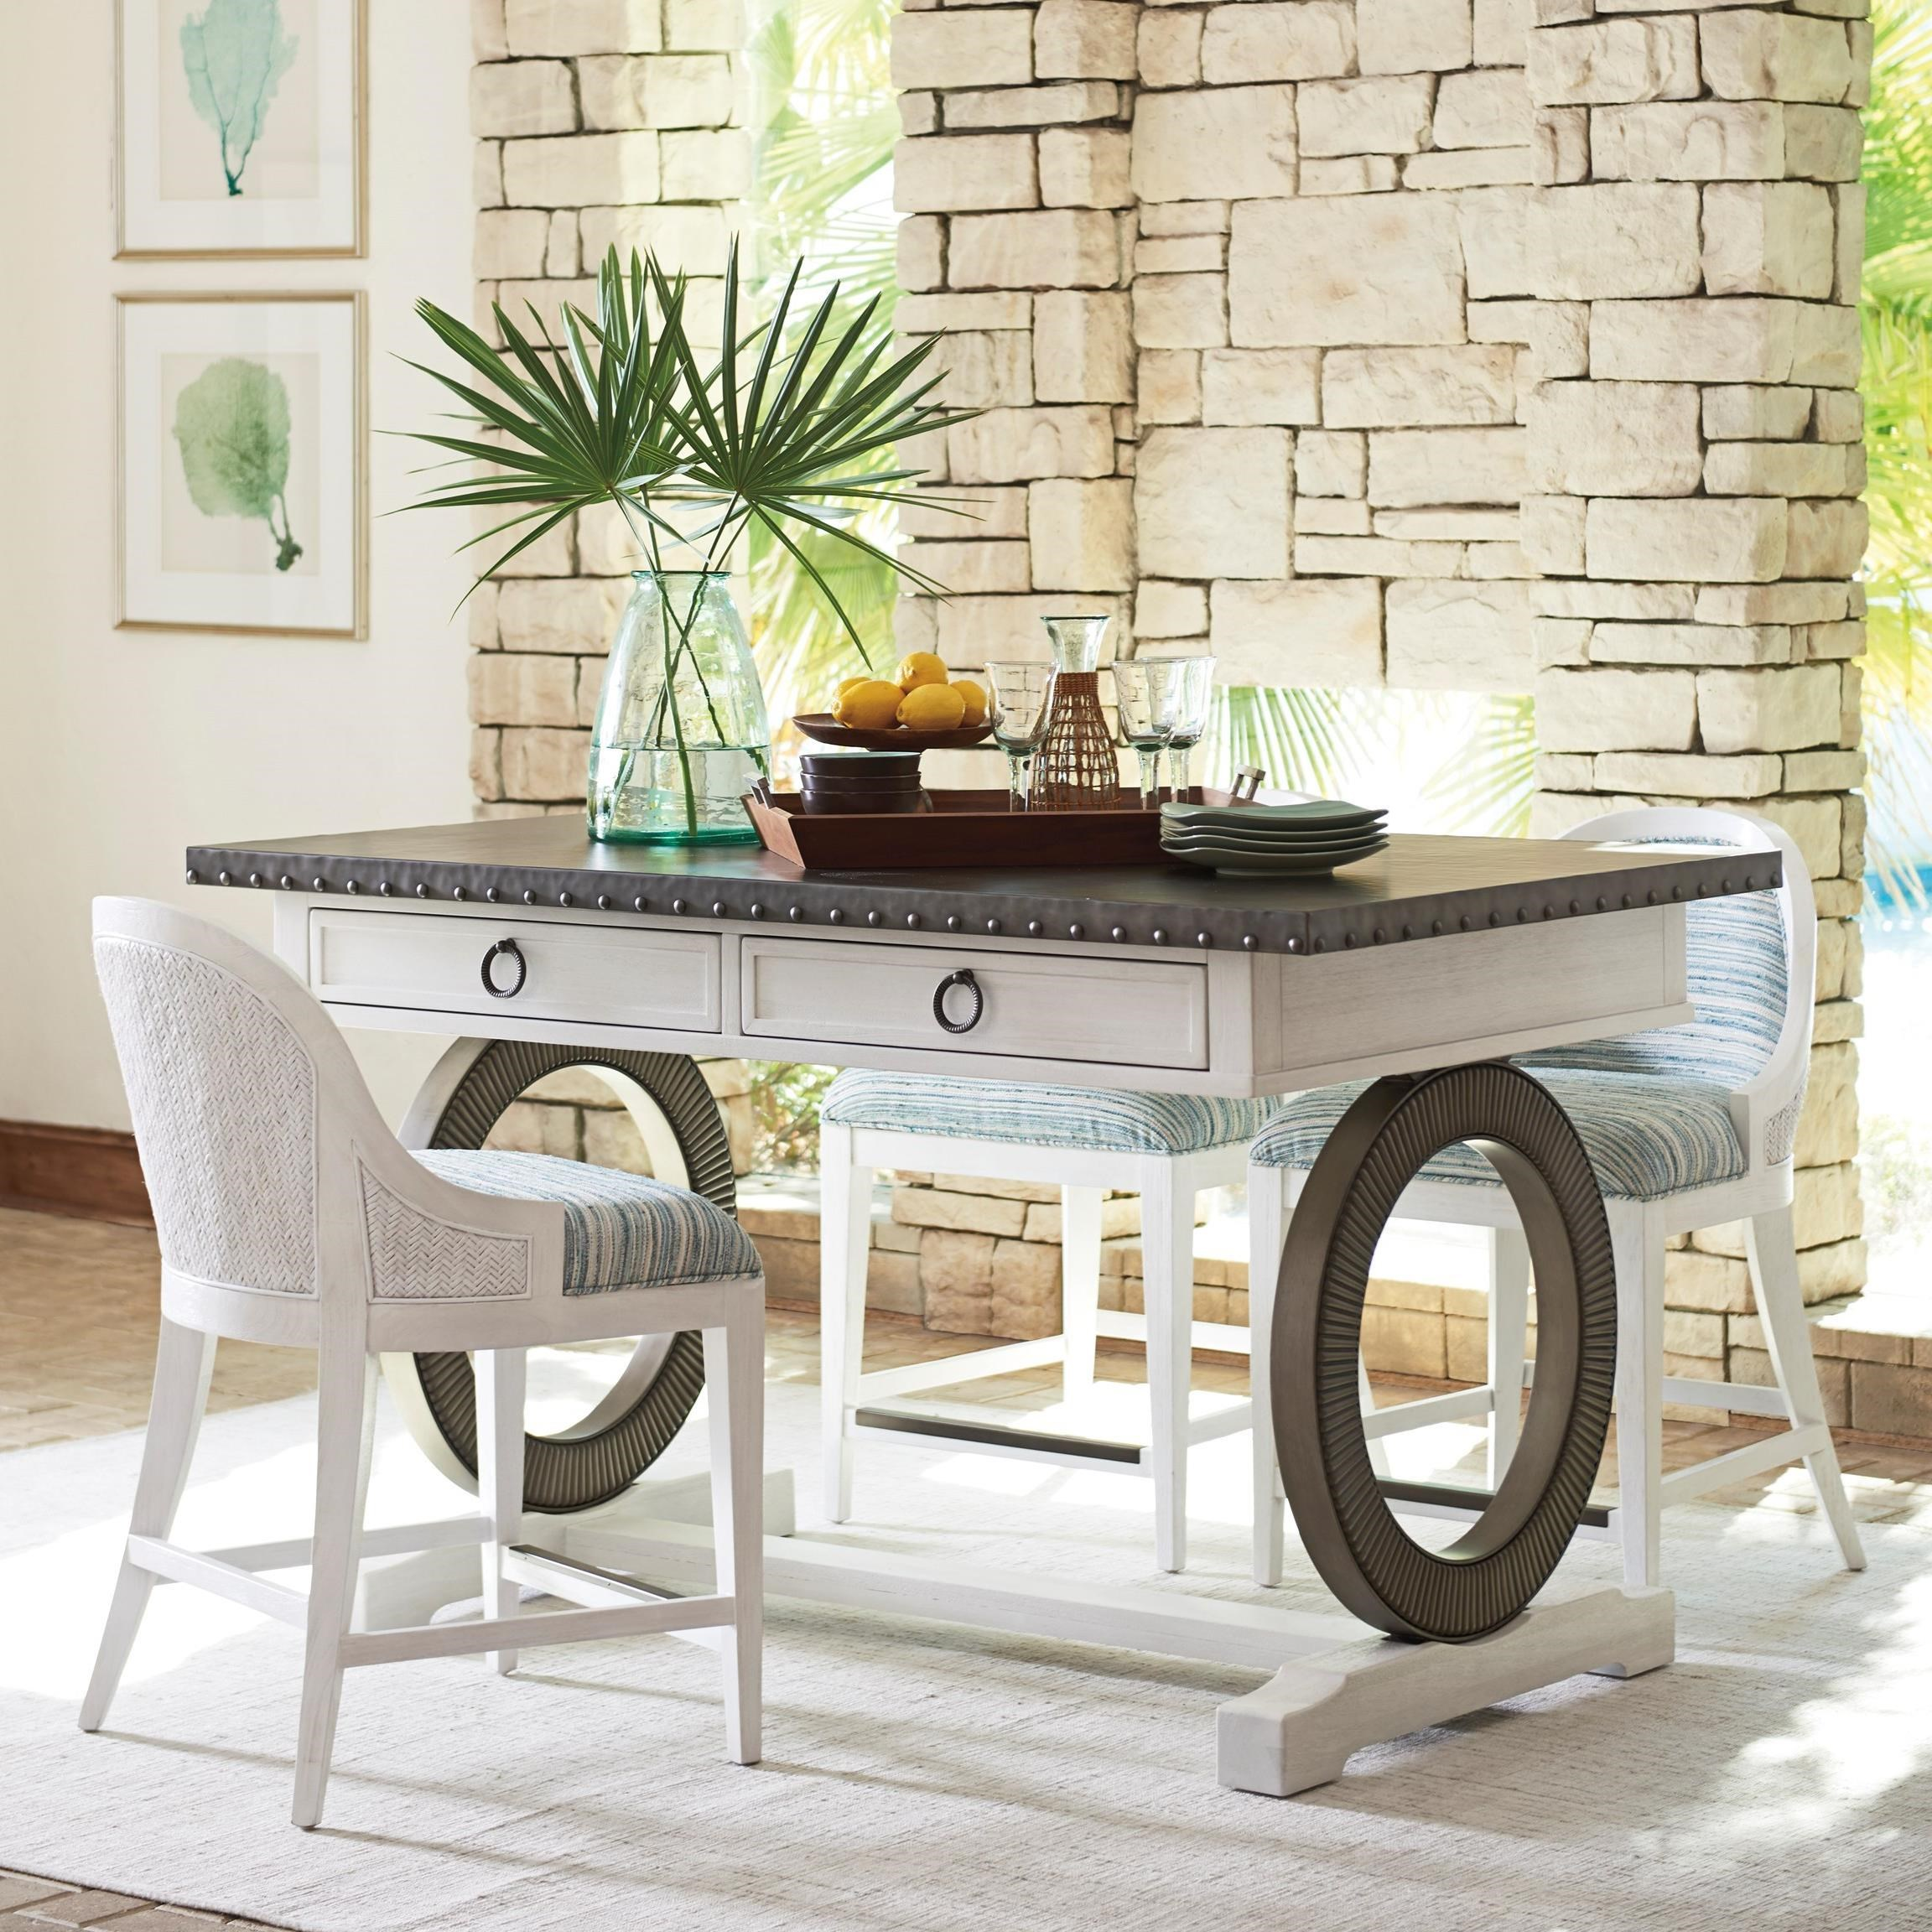 Ocean Breeze 4-Piece Dining Set by Tommy Bahama Home at Baer's Furniture